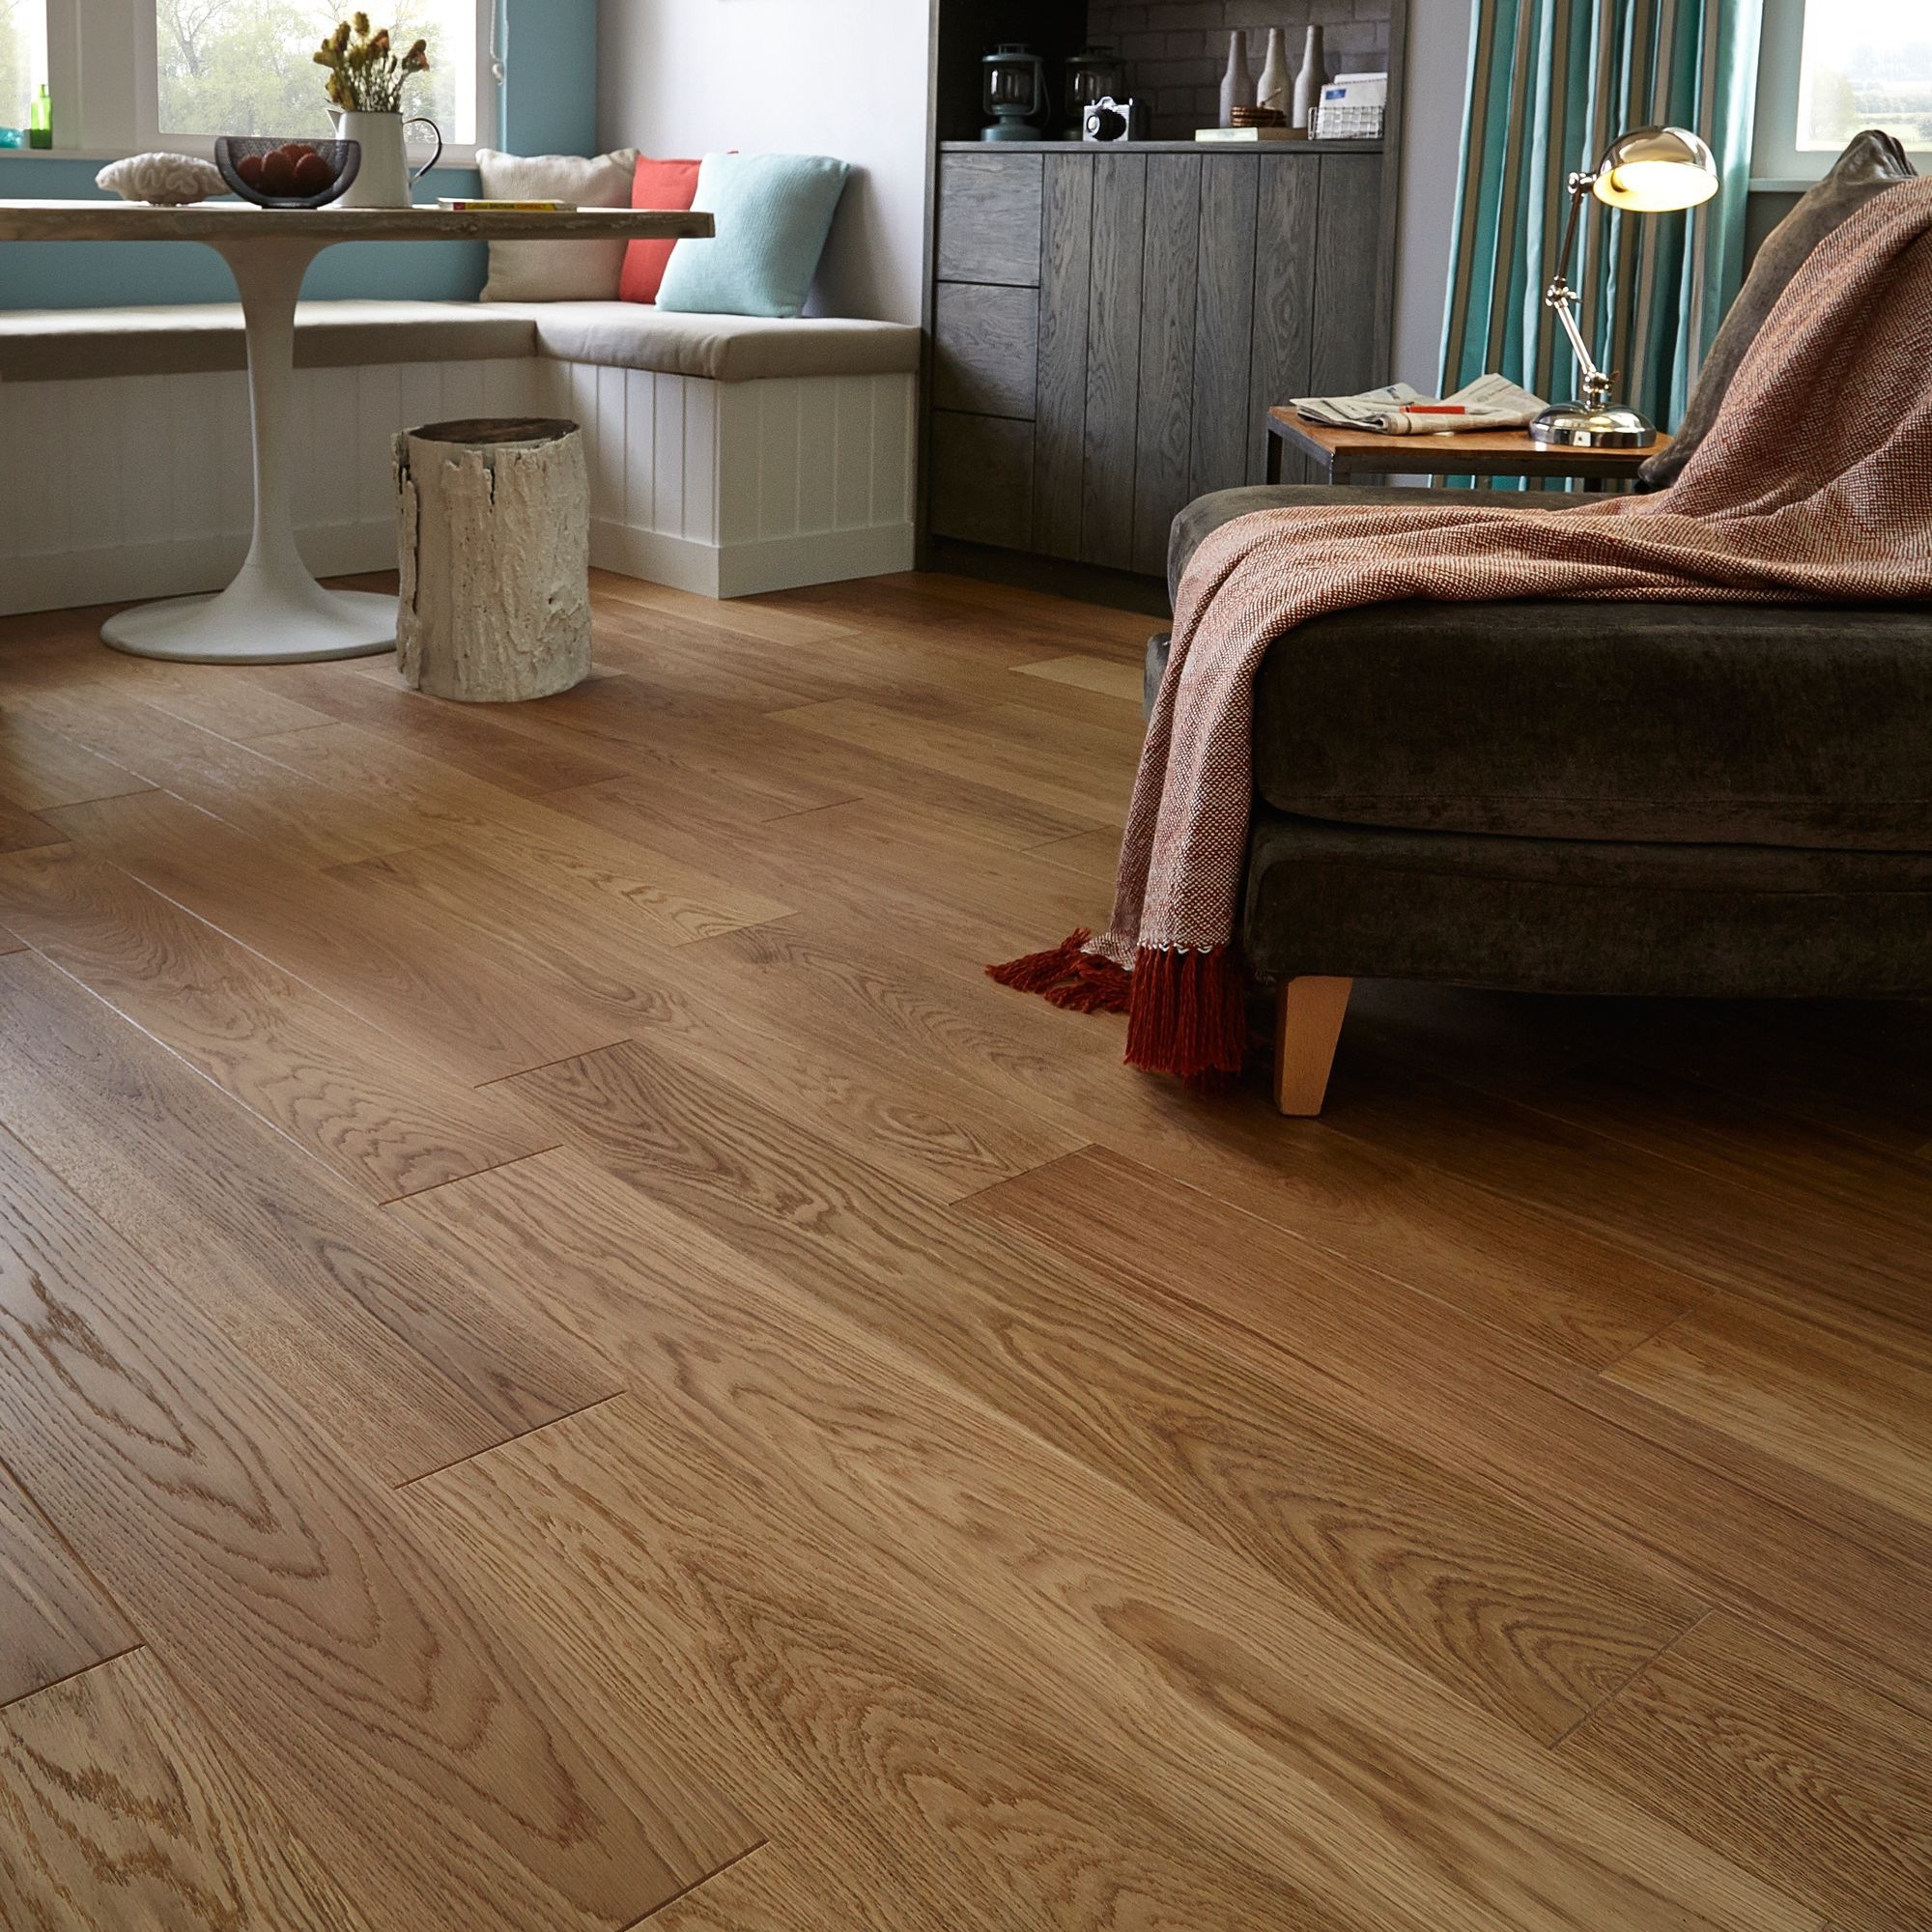 Quick step cadenza natural oak effect wood top layer for Quickstep kitchen flooring